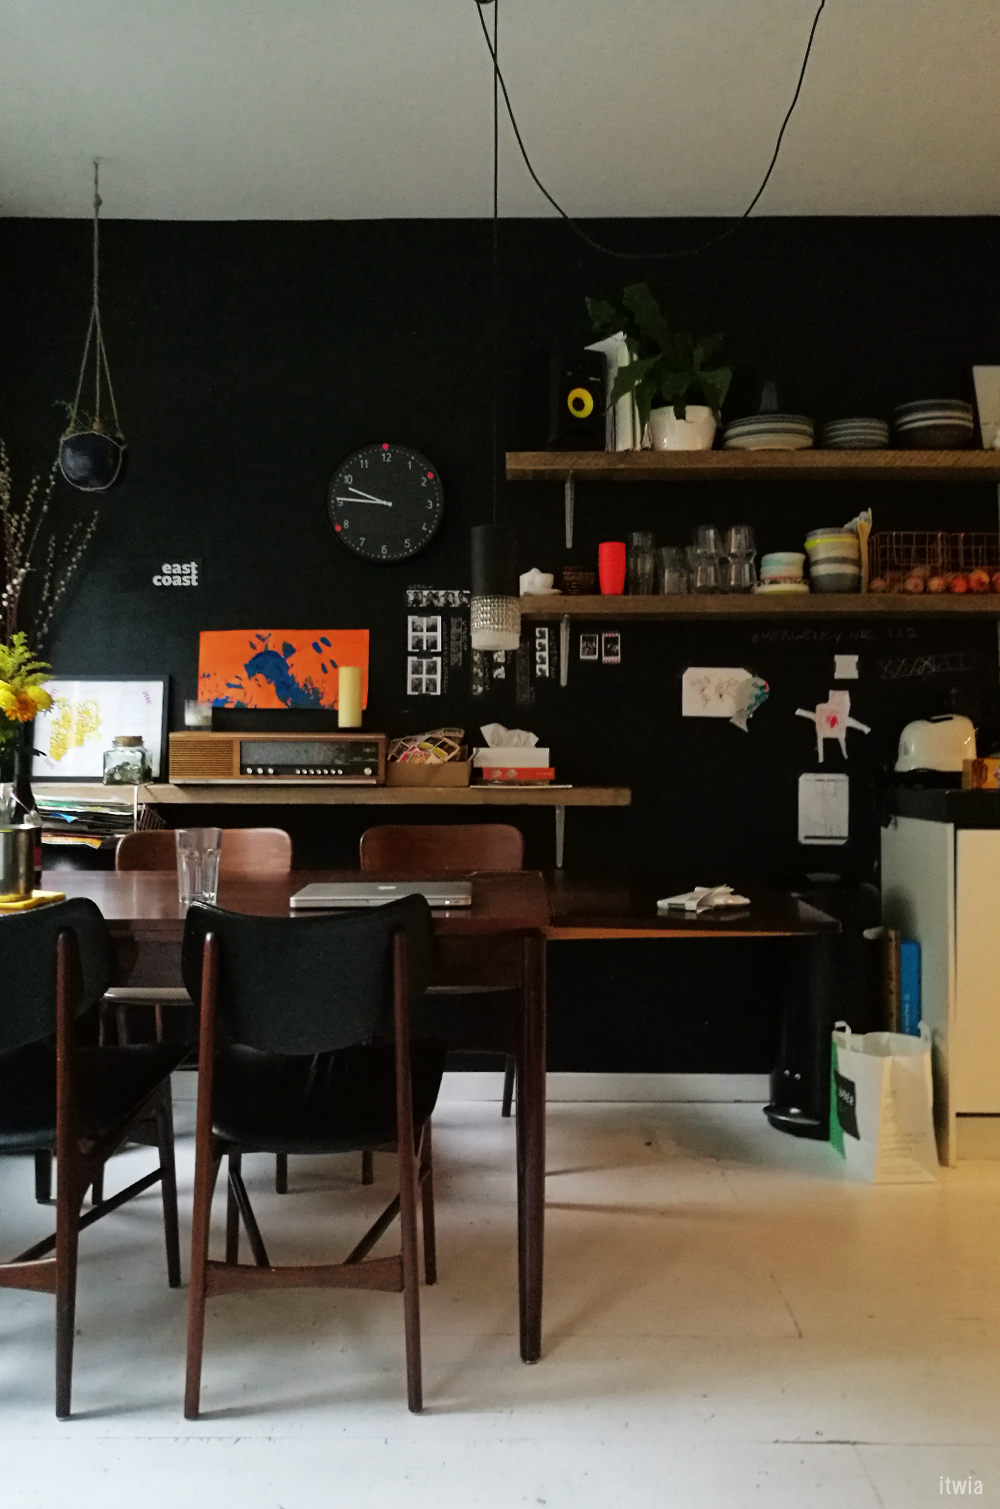 itwia_amsterdam_airbnb2